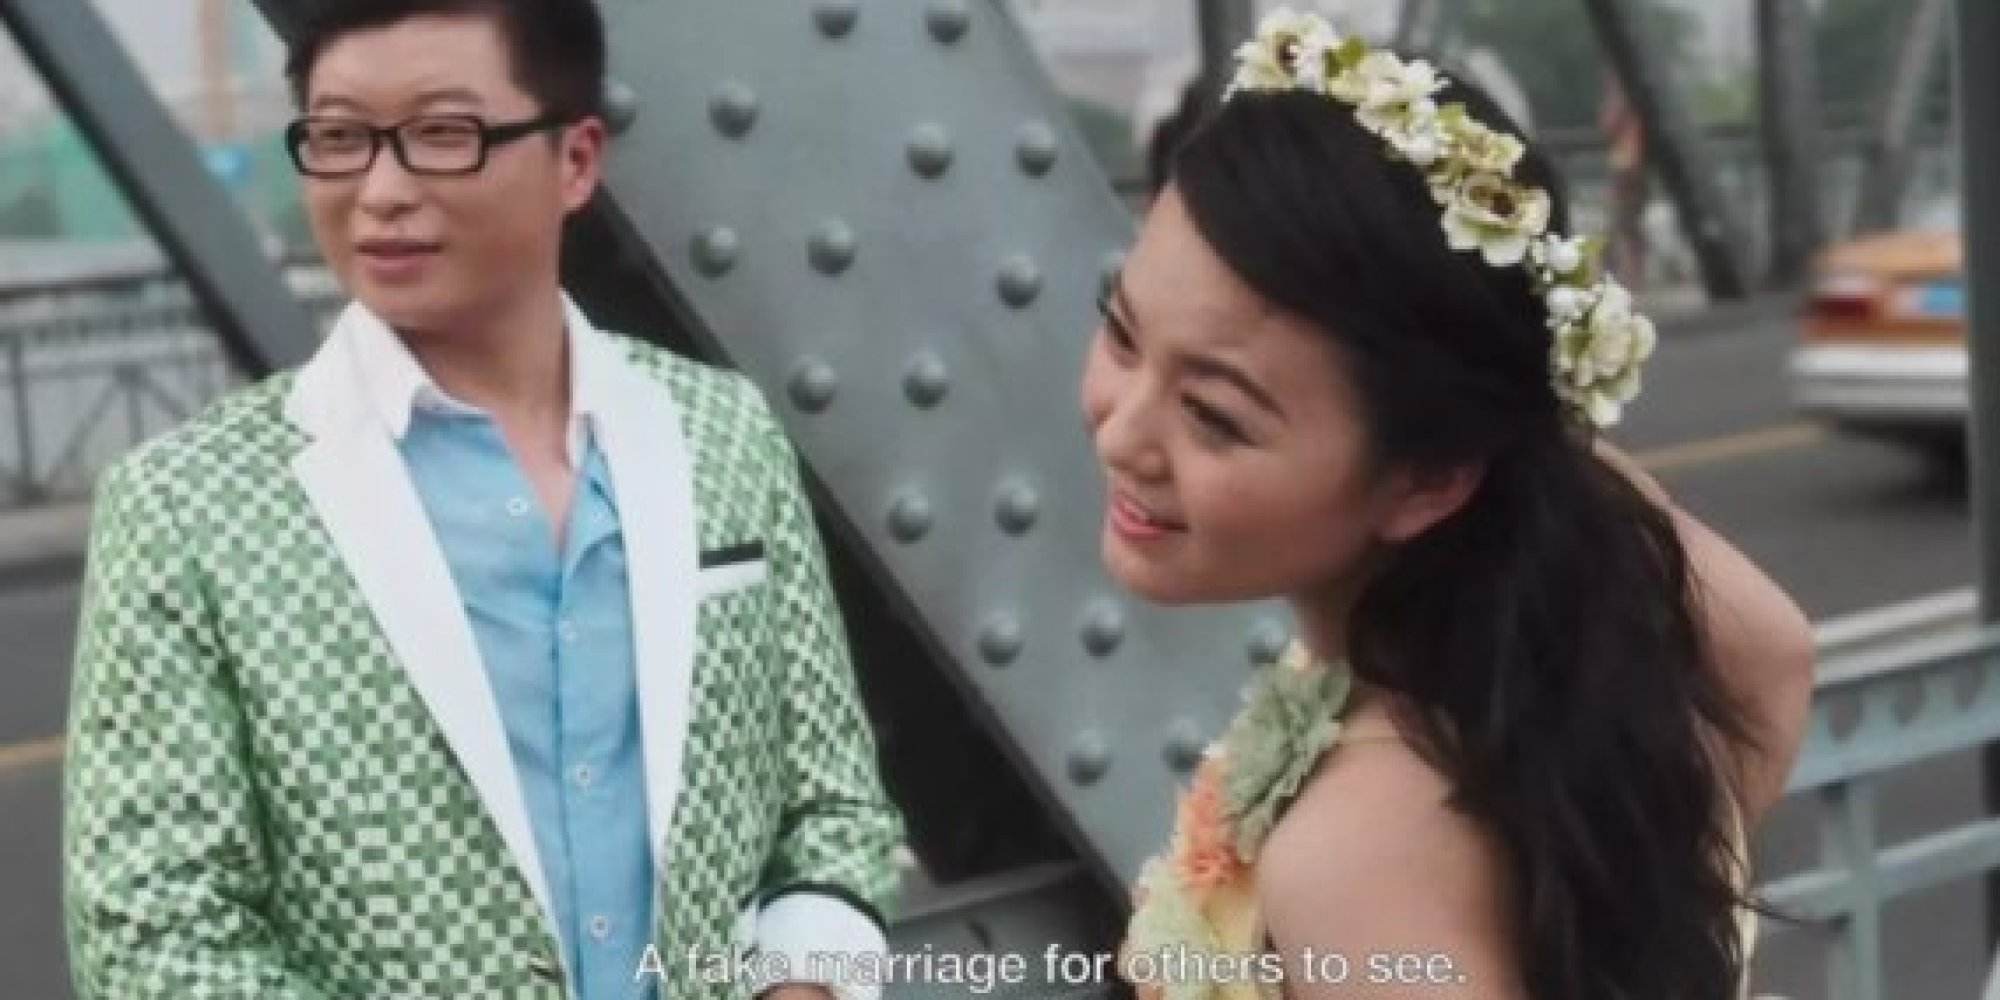 New Documentary Uncovers The Open Secret of China's LGBT Community: Sham Marriages | HuffPost